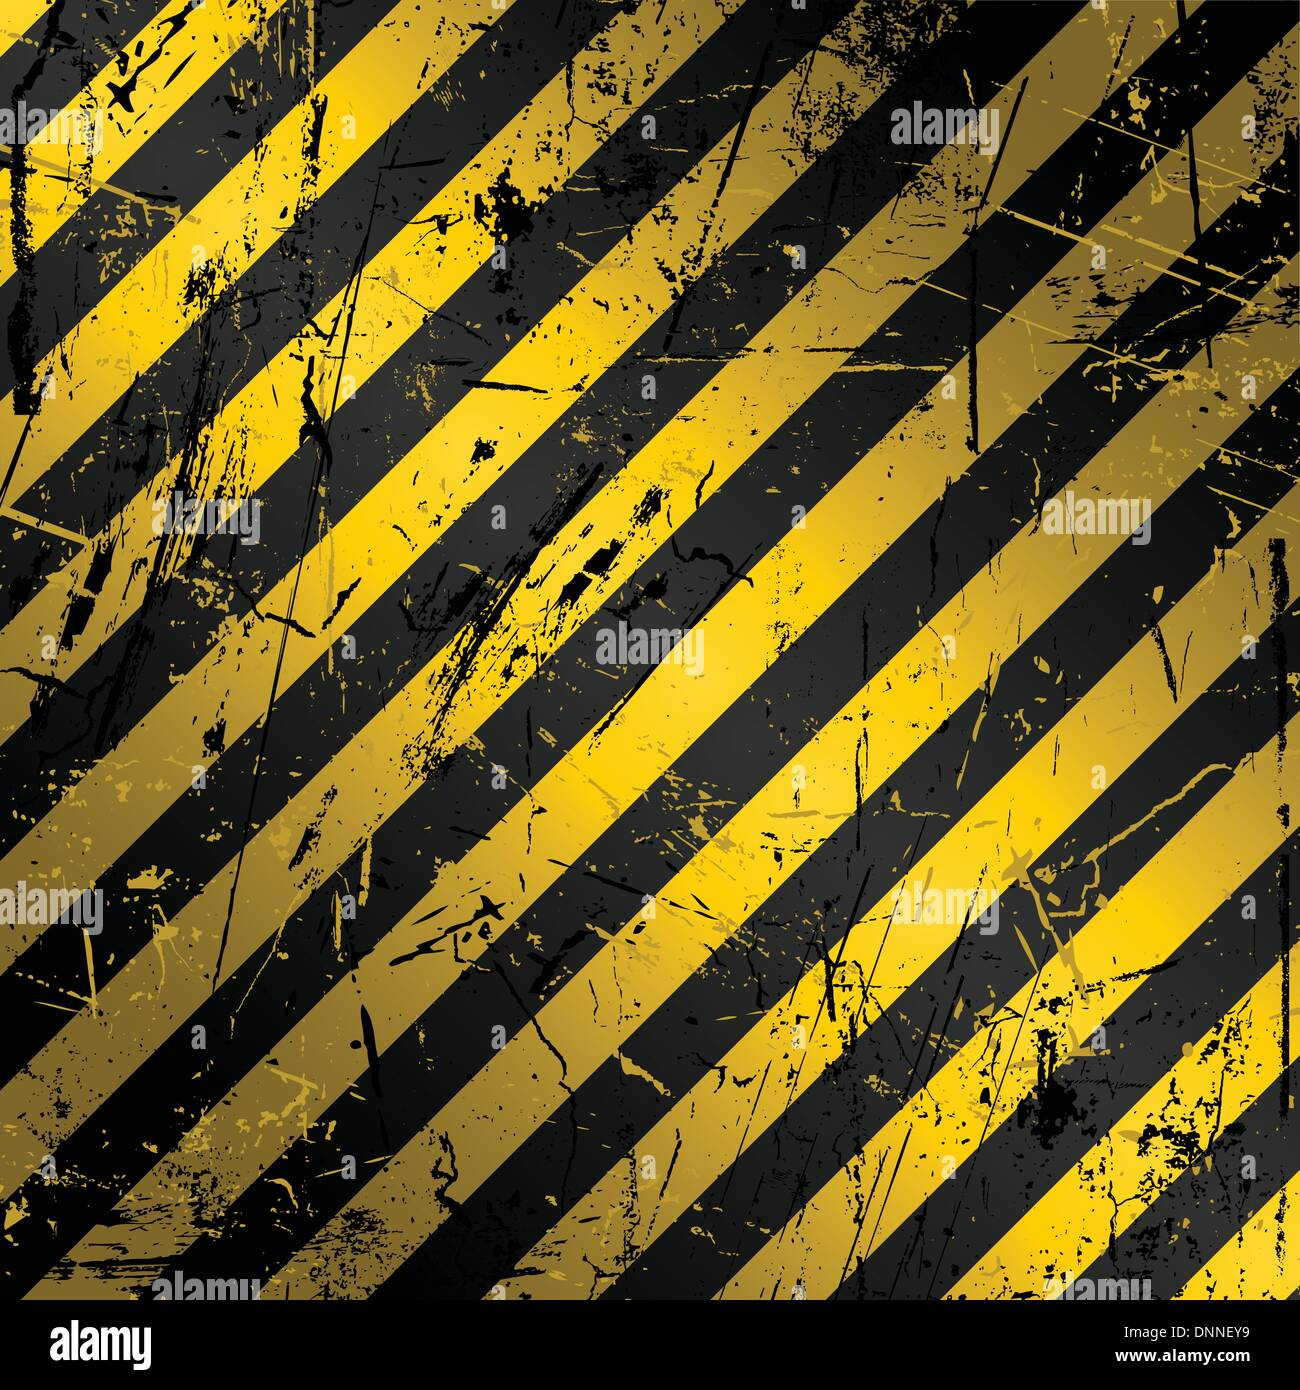 Textured grunge construction background in yellow and black - Stock Image